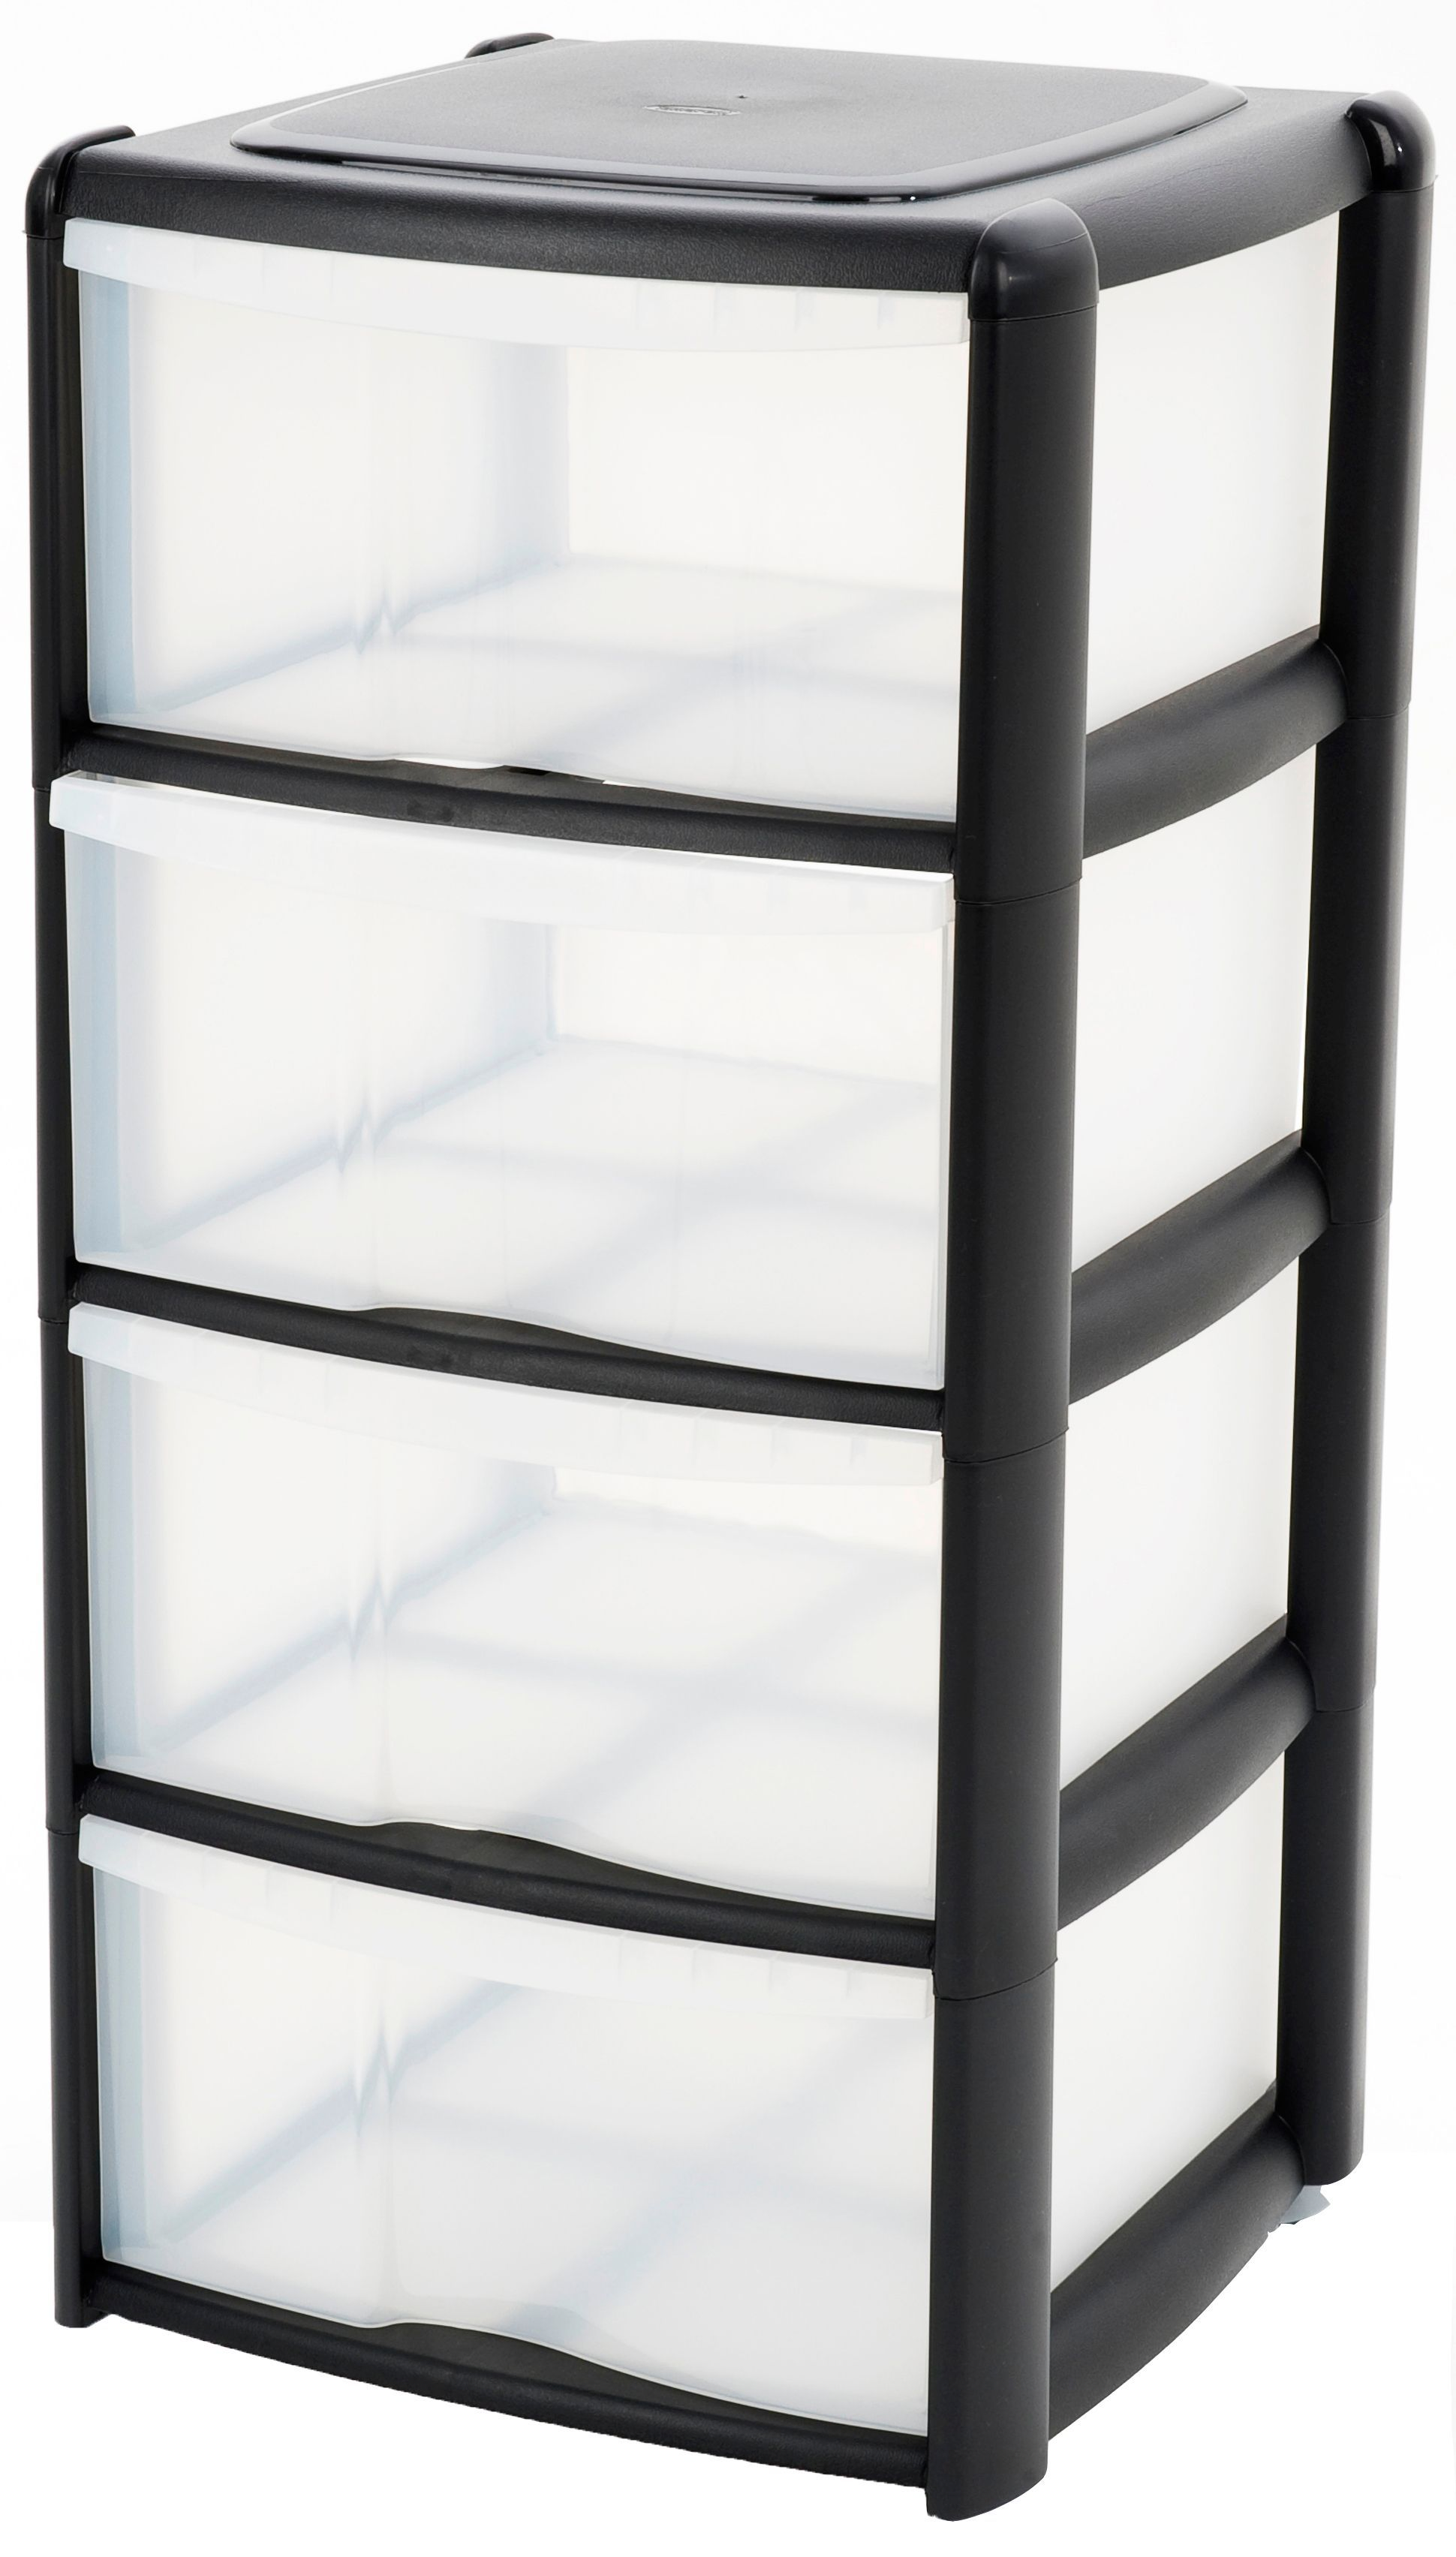 b clear drawers at prd departments really useful plastic diy q tower drawer bq